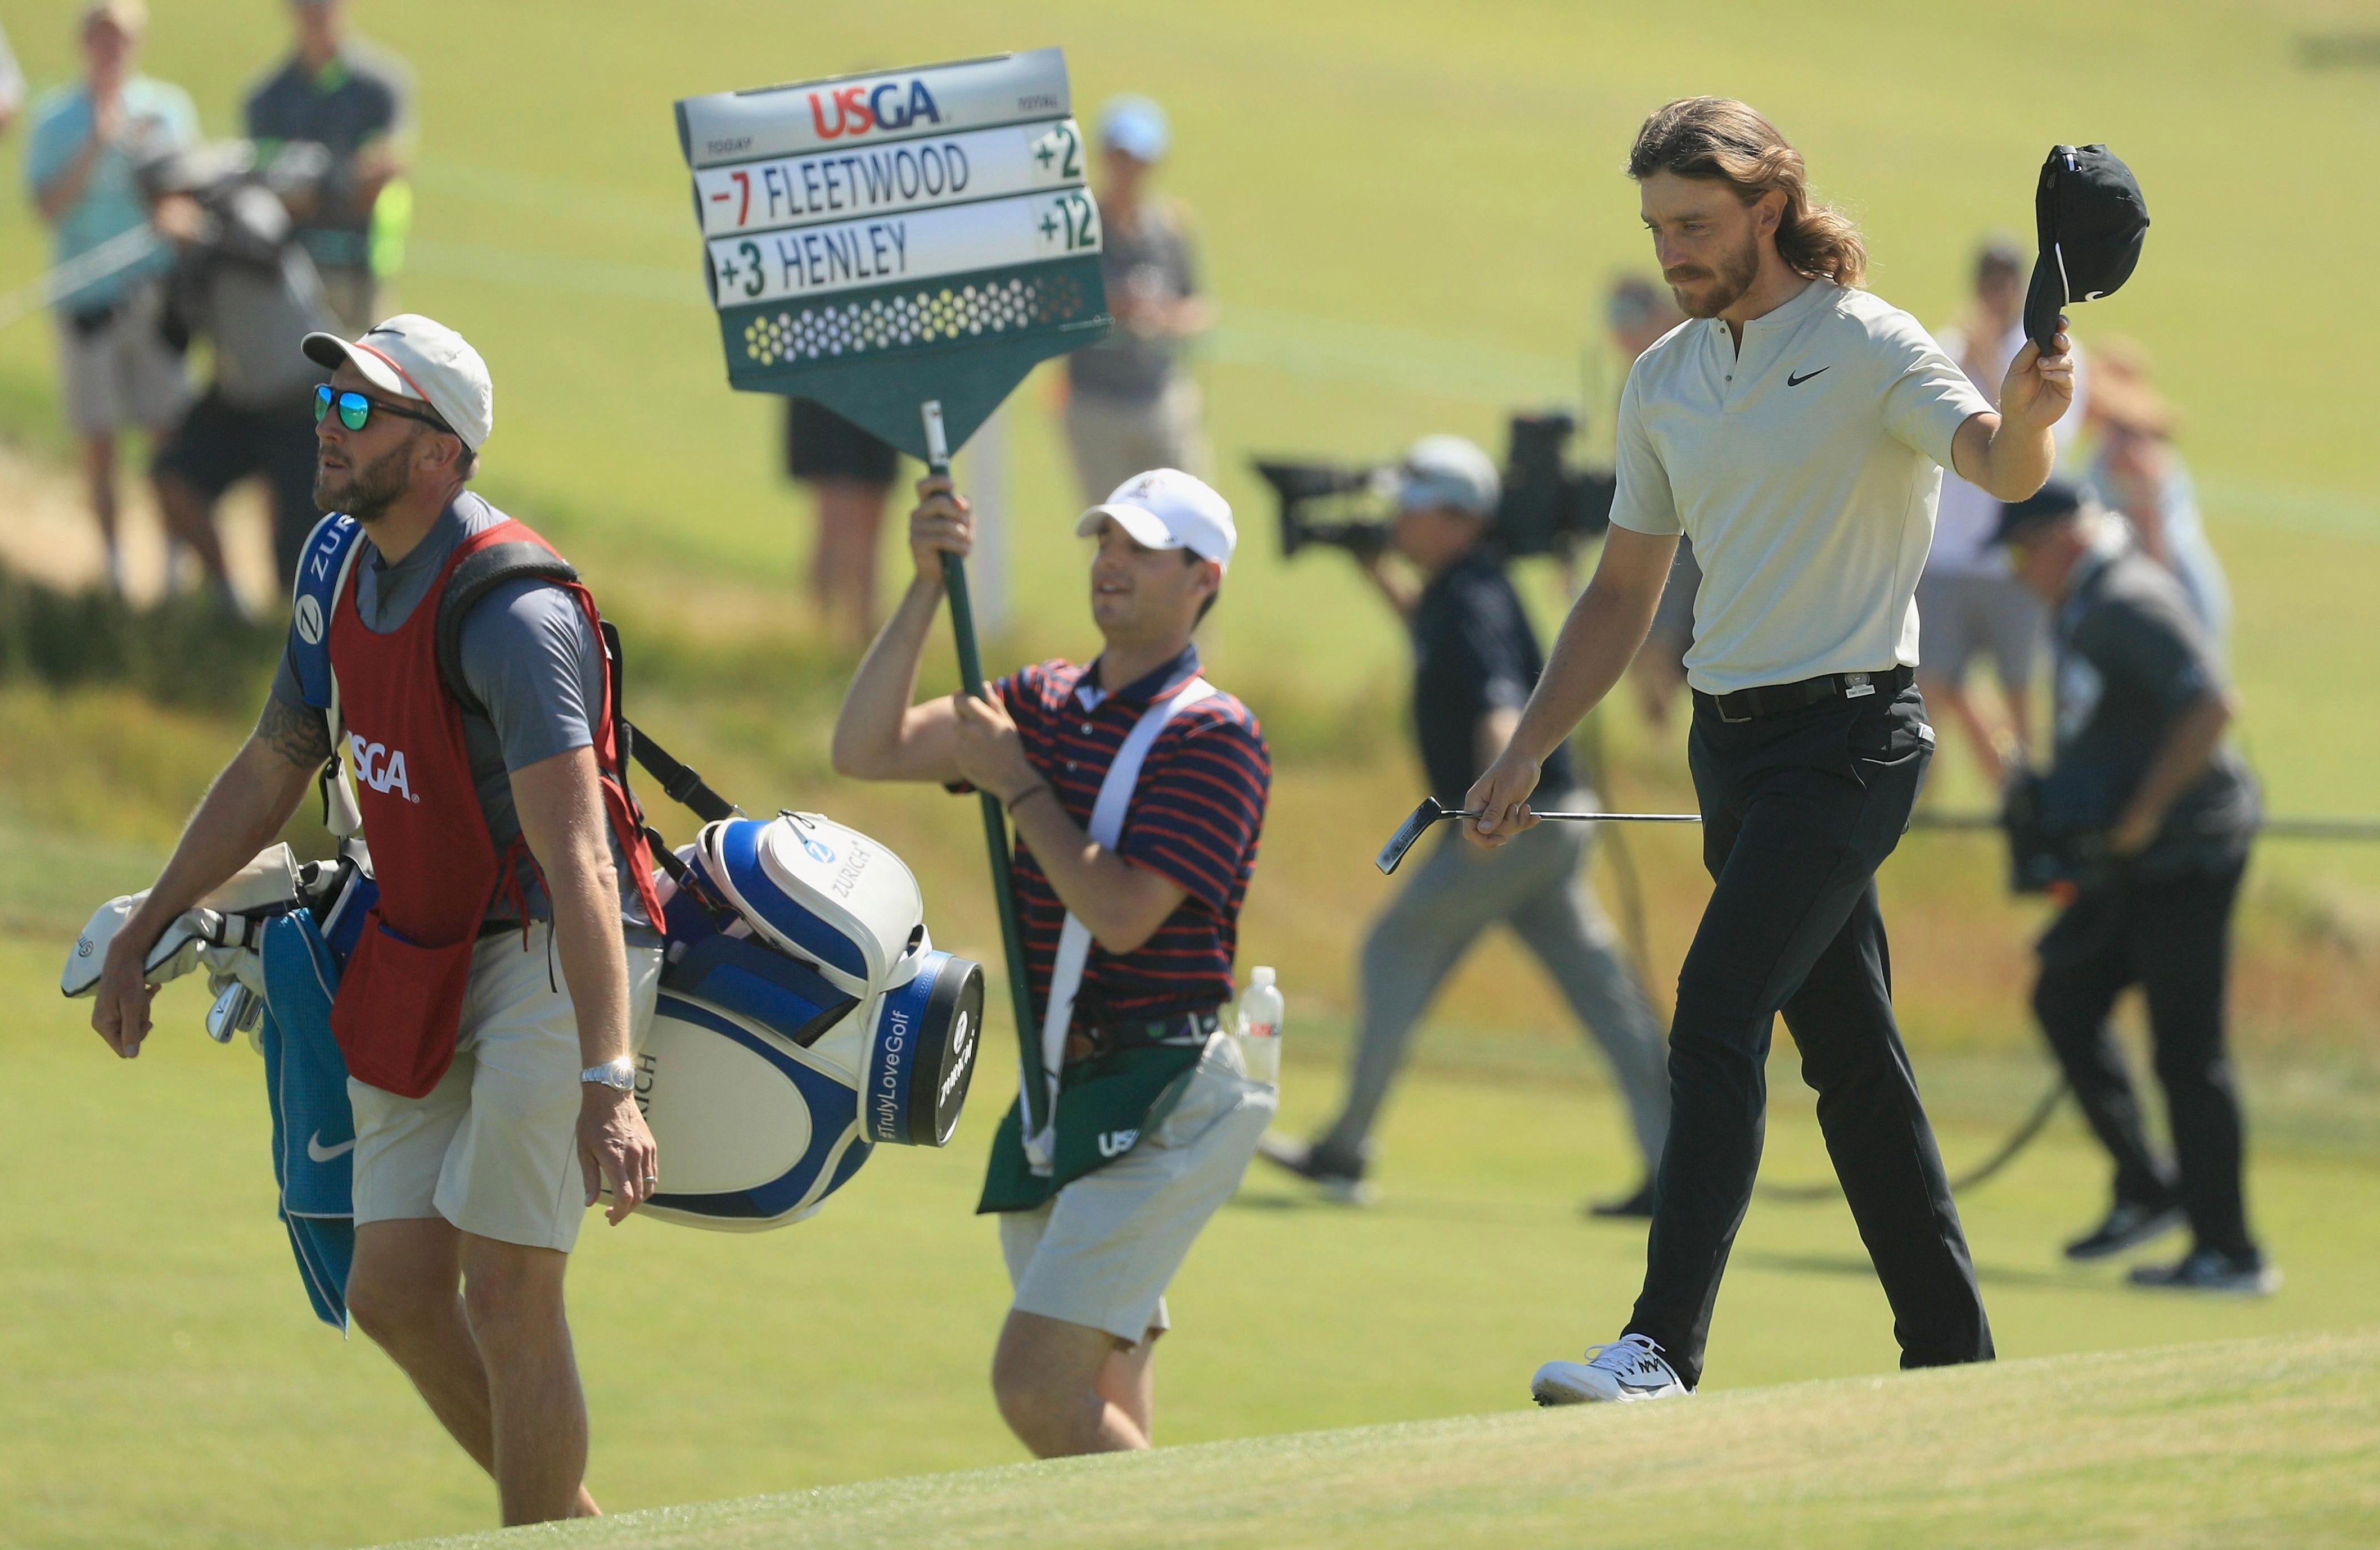 Tommy Fleetwood hit a 63 on Sunday but finished one shot back